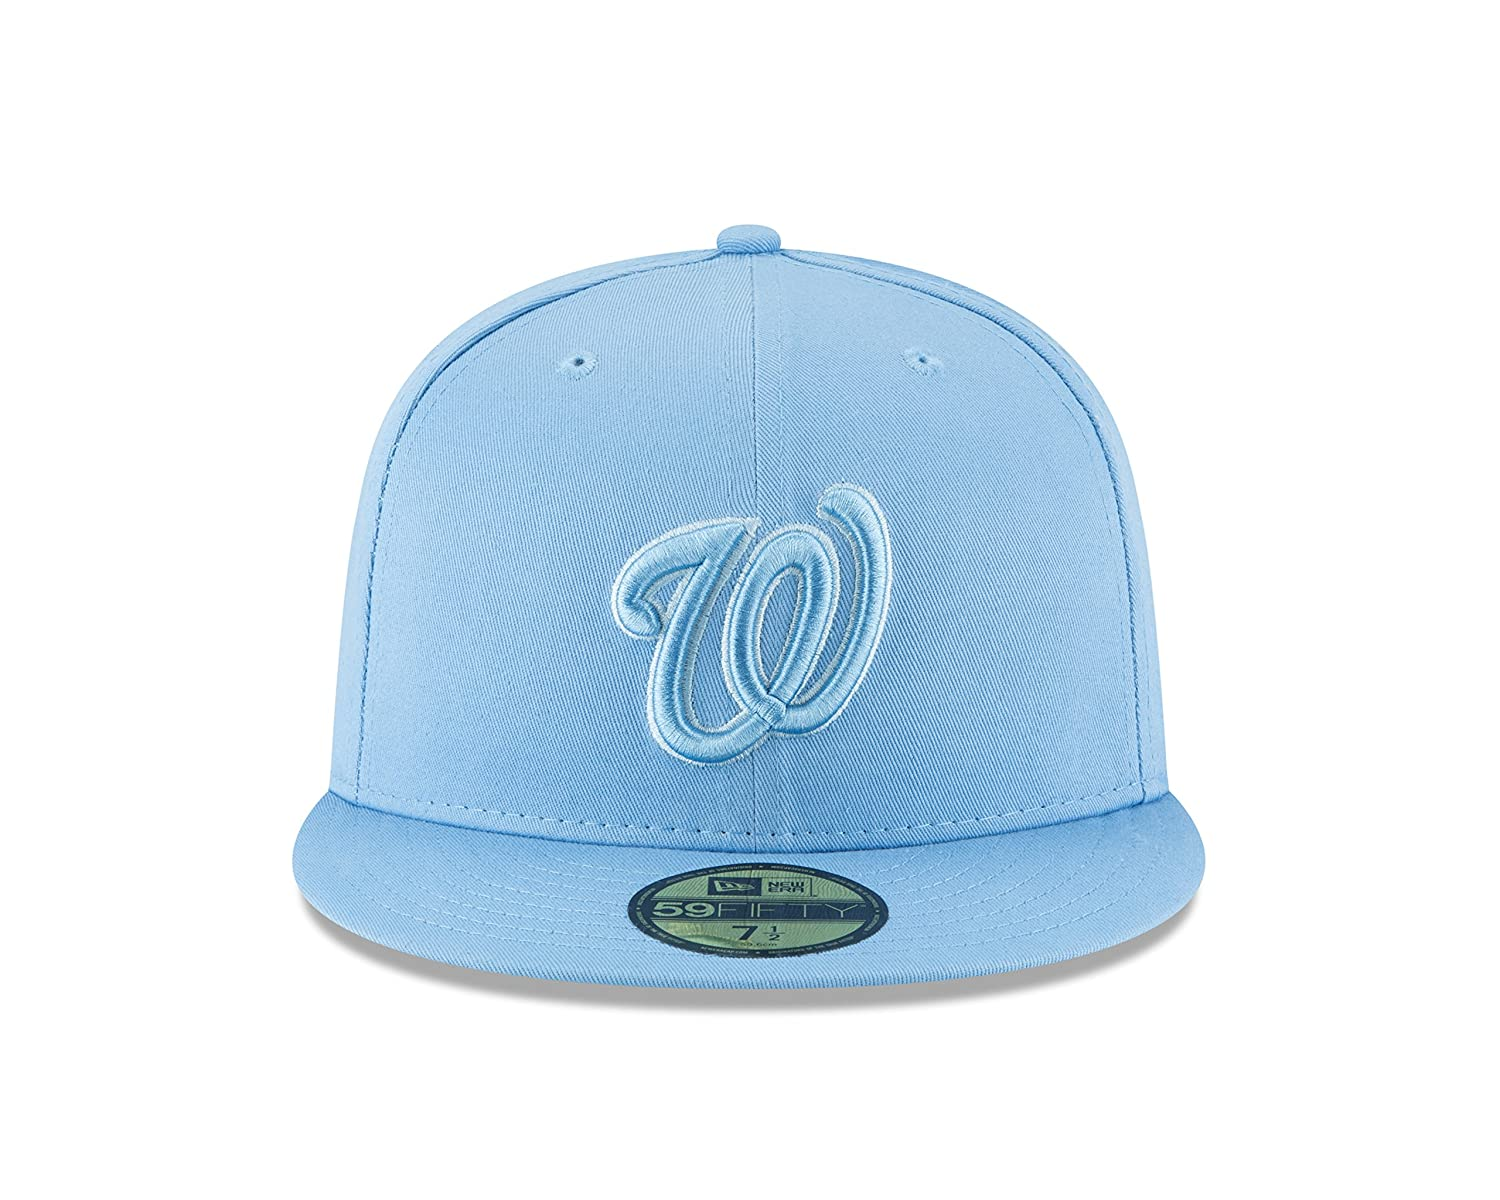 Amazon.com   New Era Washington Nationals Tonal Pastel Sky Blue Fitted  59Fifty MLB Hat   Sports   Outdoors 6834ada16496